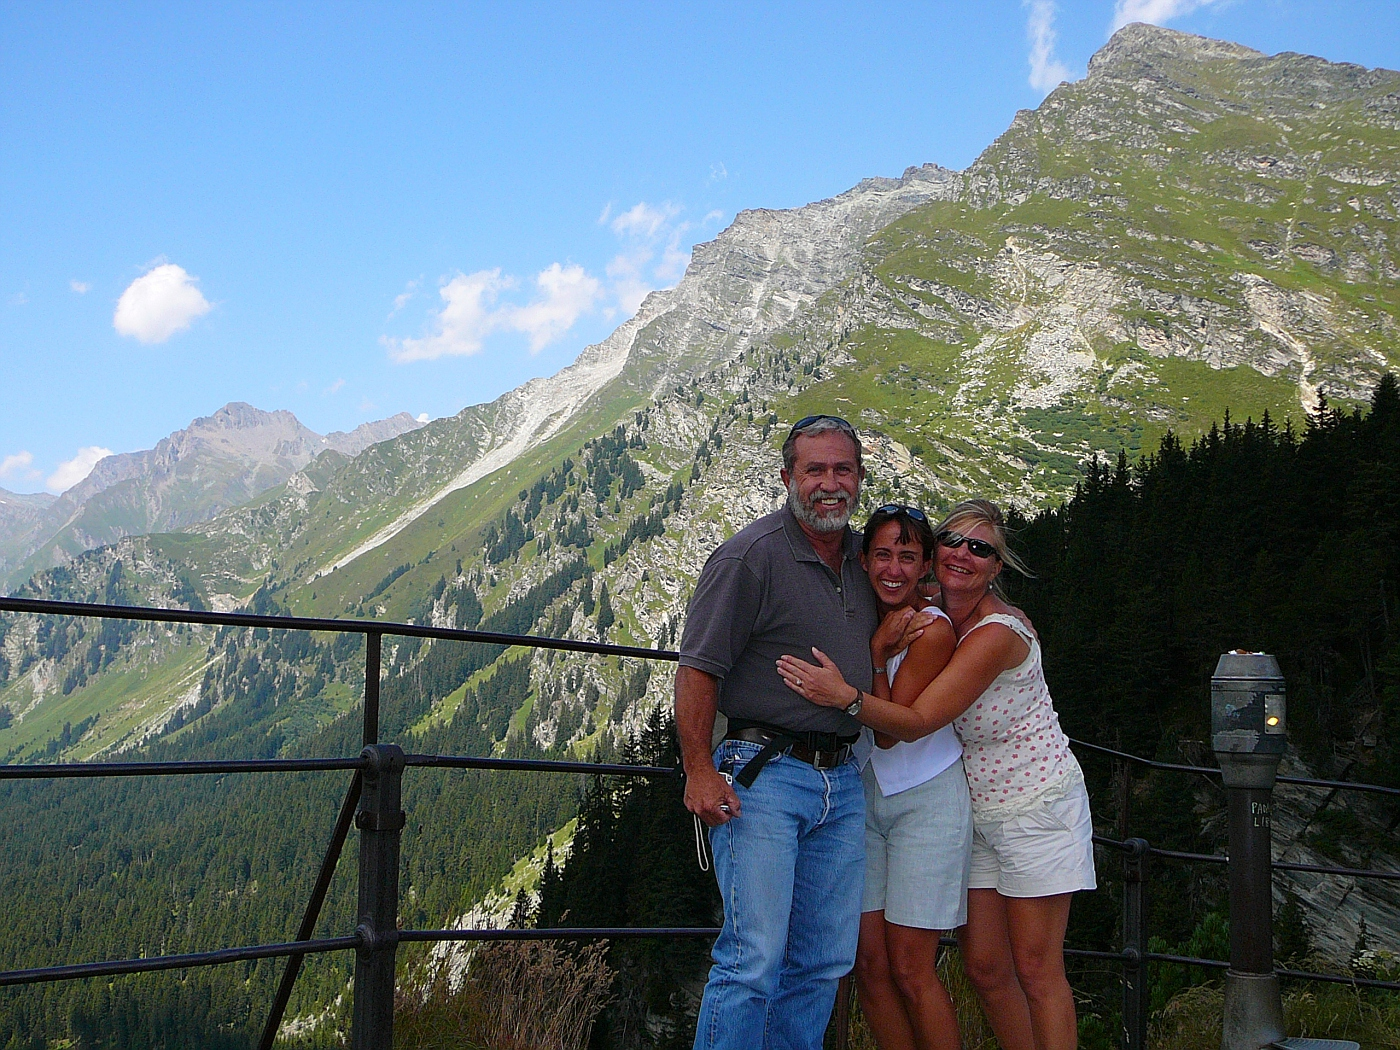 Hoyt, Shellie and Shelly First Views of Swiss Alps